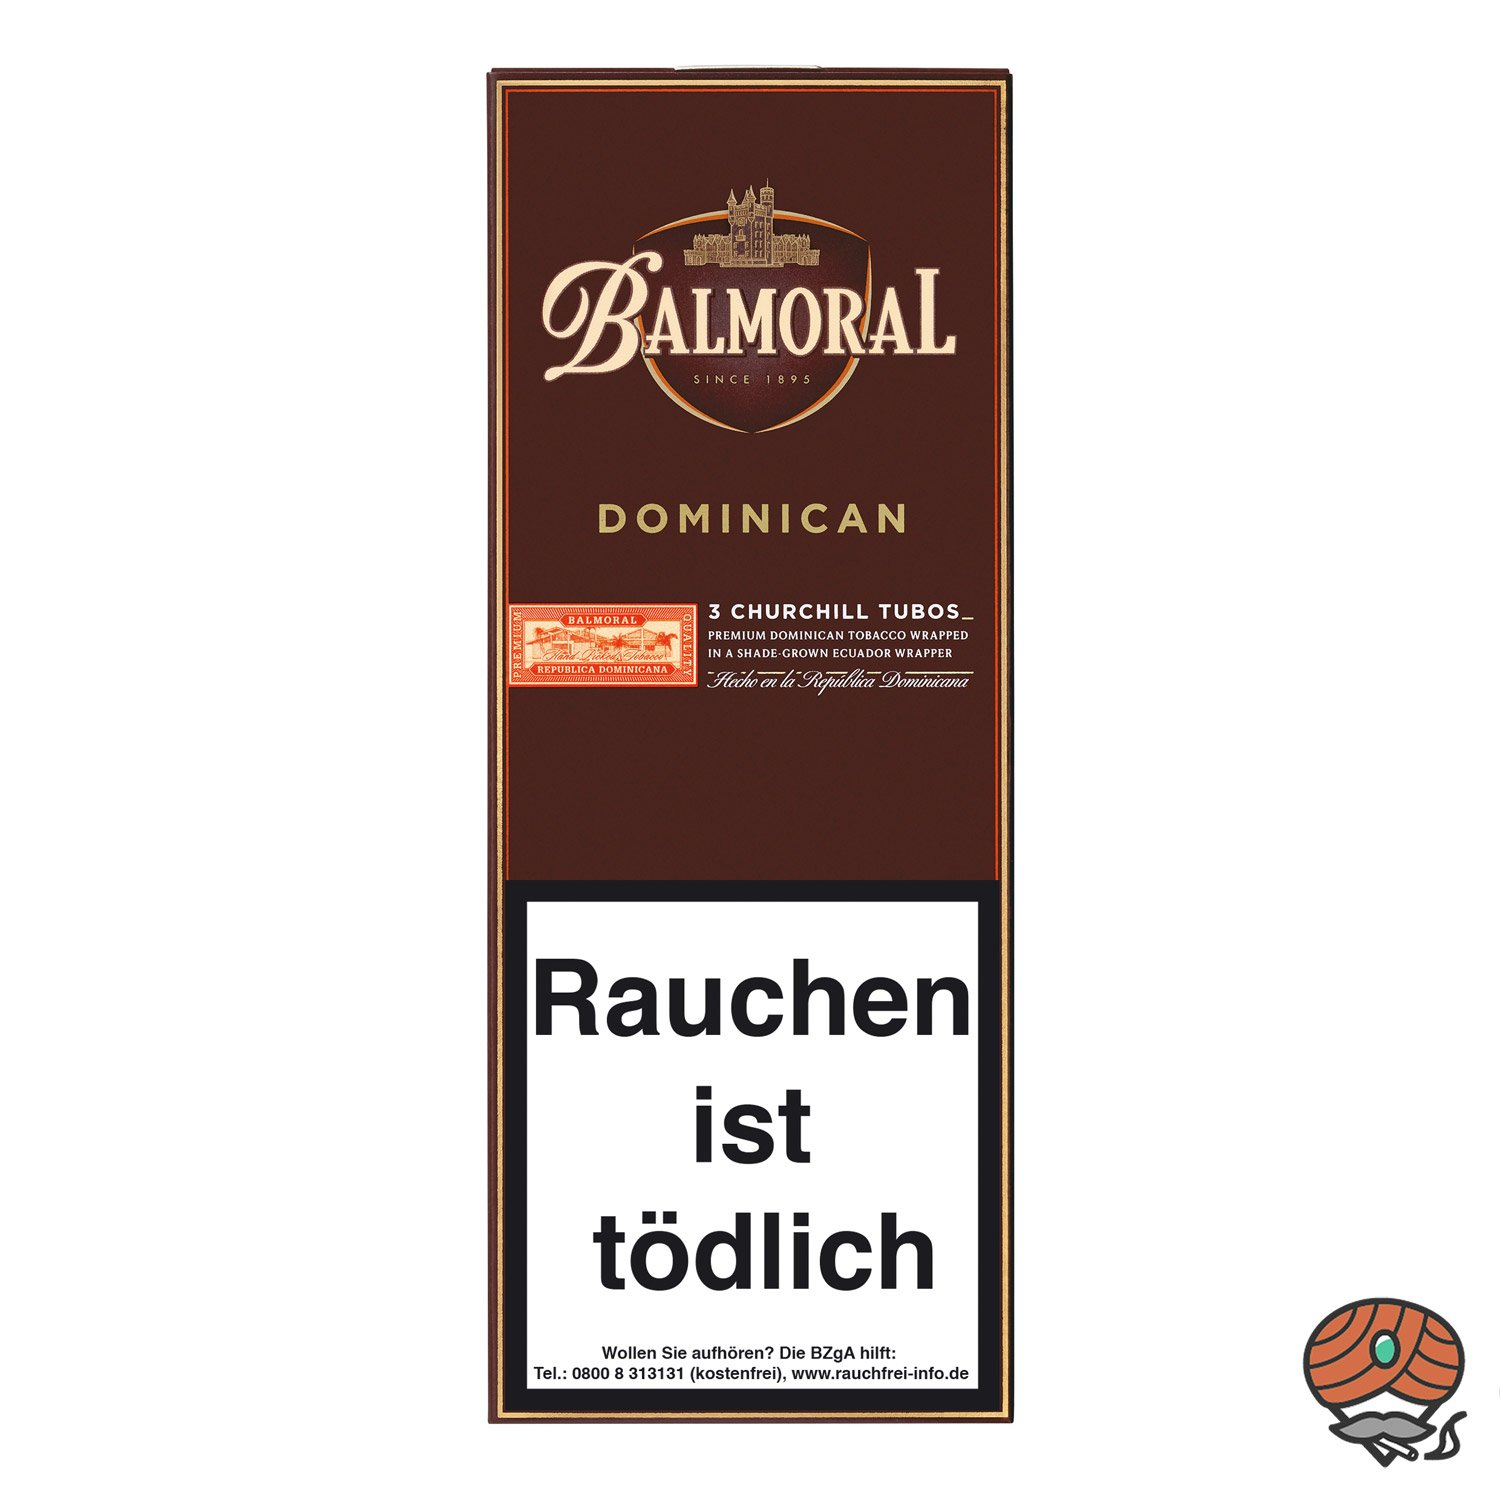 Balmoral Dominican Selection Churchill Tubos Zigarren, 3 Stück